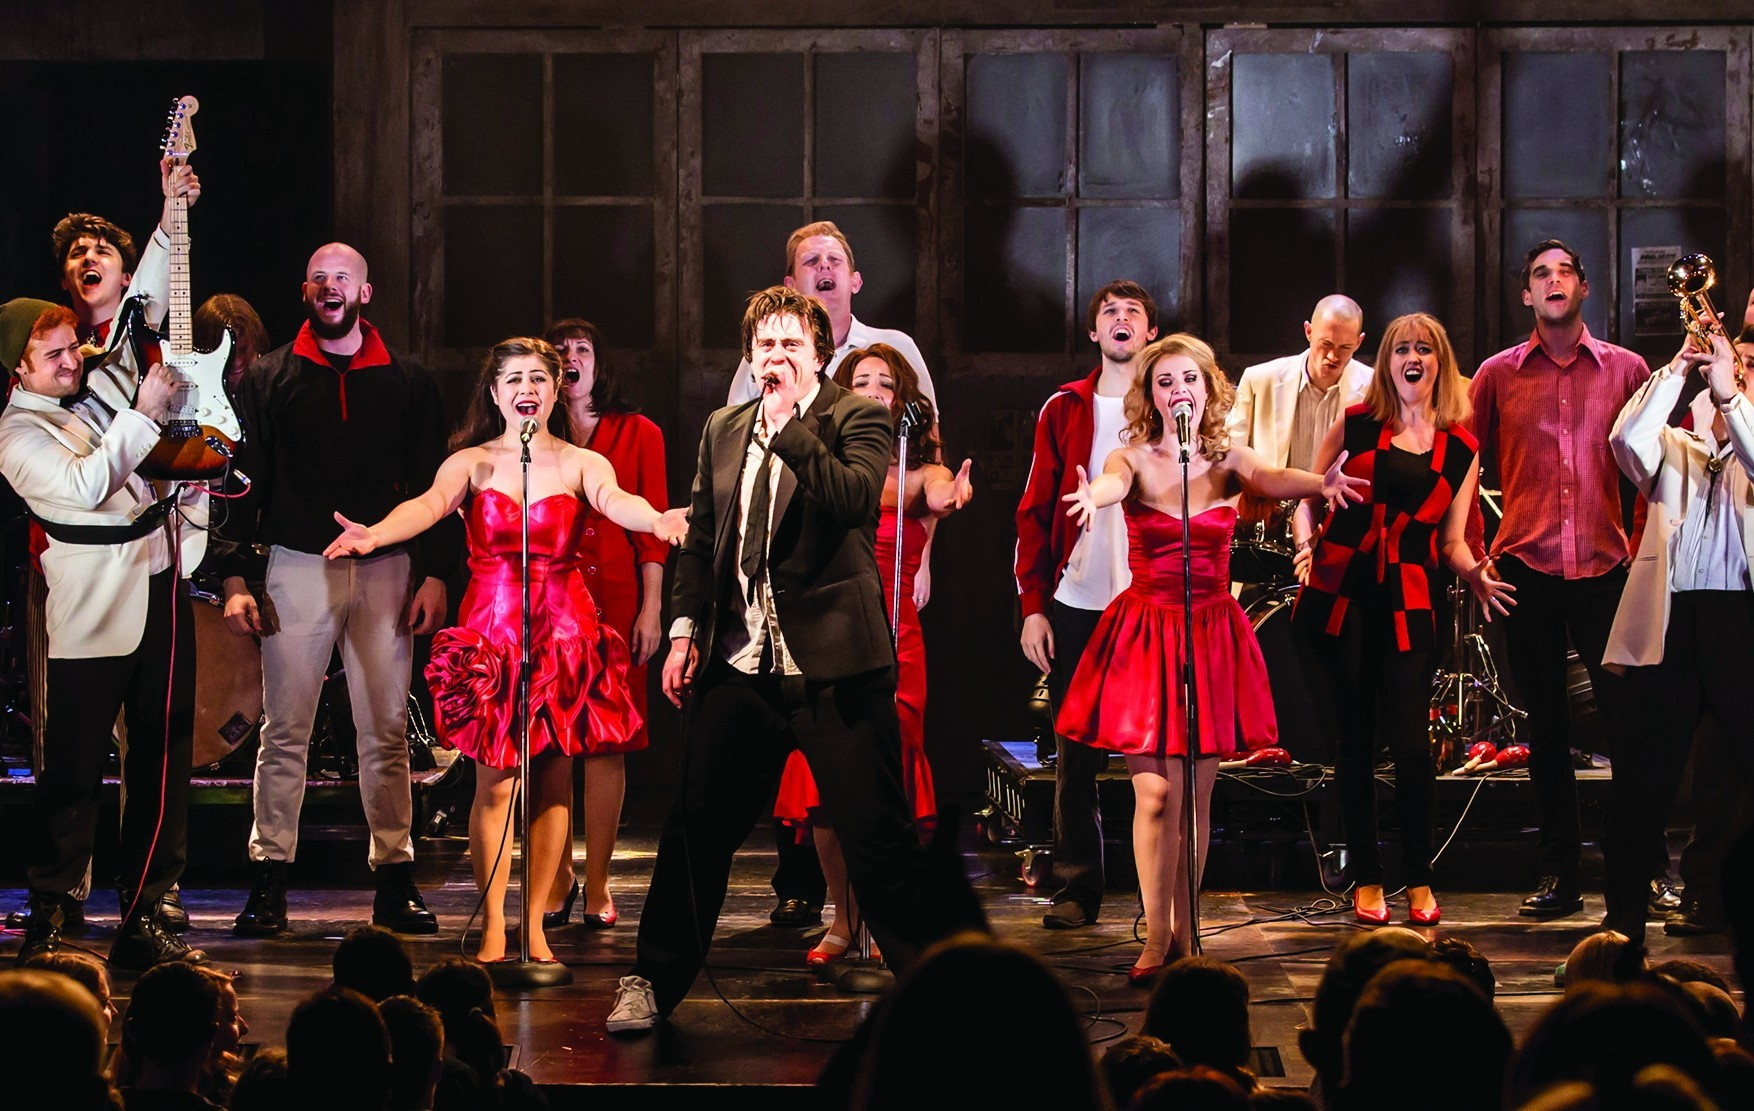 The Commitments is based around a struggling band in Ireland.